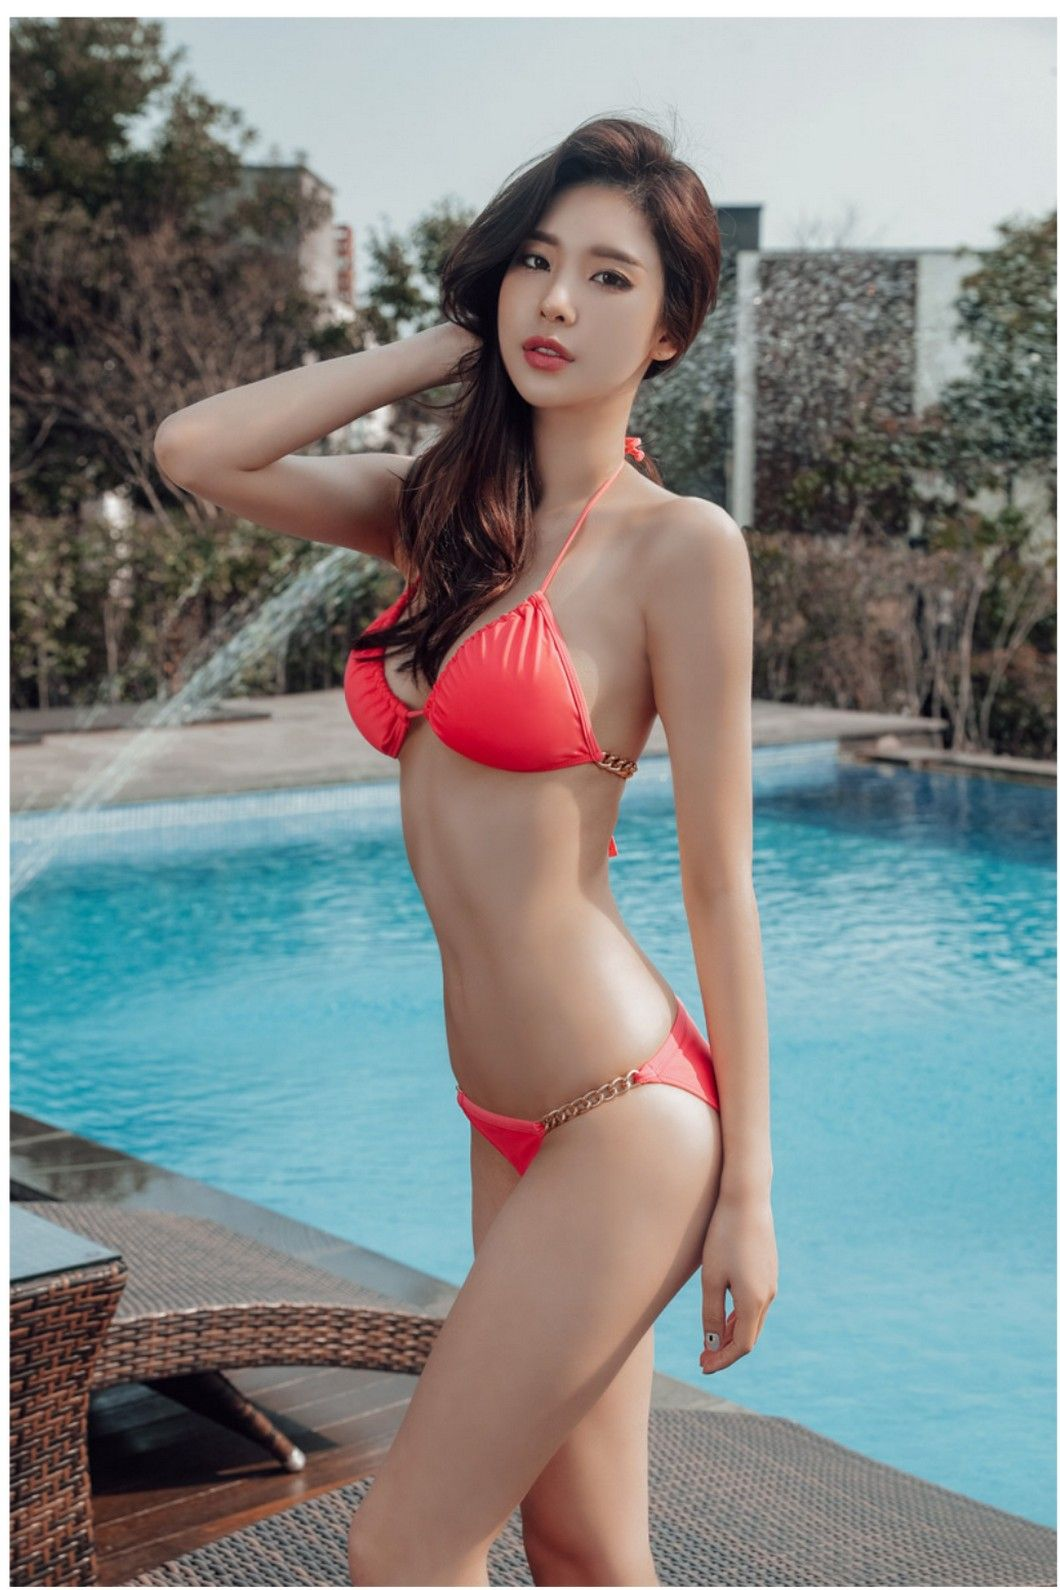 """Pregnant And Gone Part 5 (Sepronio)<span class=""""rating-result after_title mr-filter rating-result-7510""""><span class=""""mr-star-rating"""">    <span class=""""mr-custom-full-star""""  width=""""20px"""" height=""""20px""""></span>        <span class=""""mr-custom-full-star""""  width=""""20px"""" height=""""20px""""></span>        <span class=""""mr-custom-full-star""""  width=""""20px"""" height=""""20px""""></span>        <span class=""""mr-custom-full-star""""  width=""""20px"""" height=""""20px""""></span>        <span class=""""mr-custom-full-star""""  width=""""20px"""" height=""""20px""""></span>    </span><span class=""""star-result"""">5/5</span><span class=""""count"""">(2)</span></span>"""